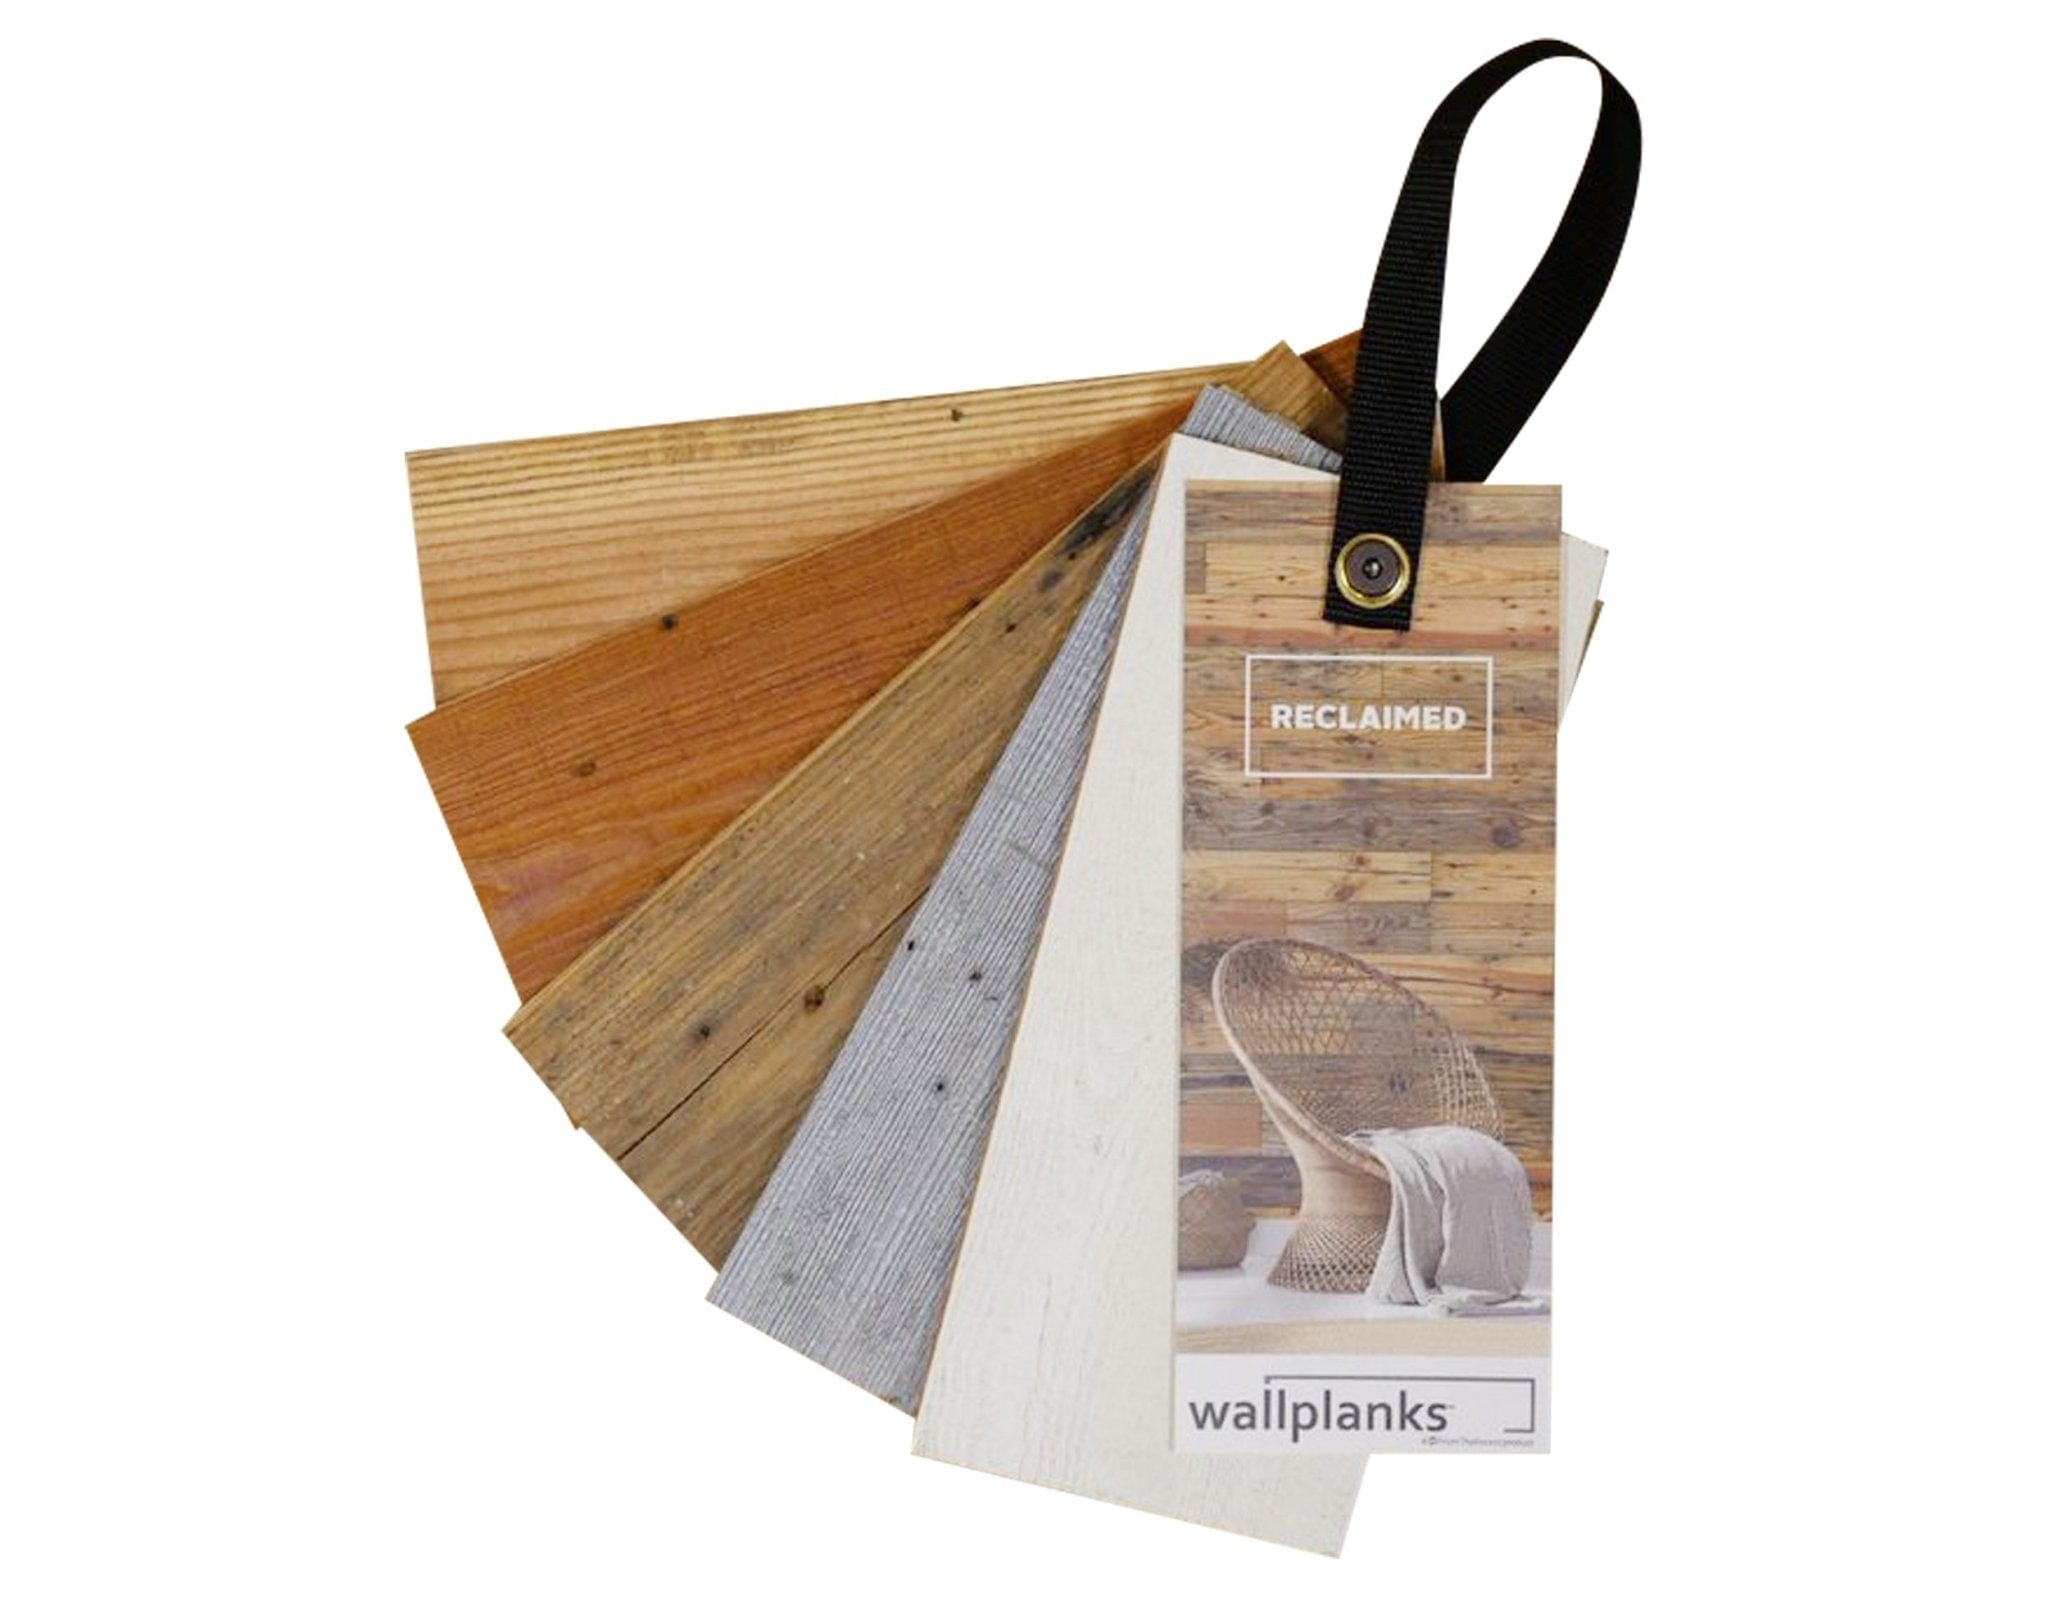 Wallplanks Reclaimed Plank Strap Set - Wallplanks